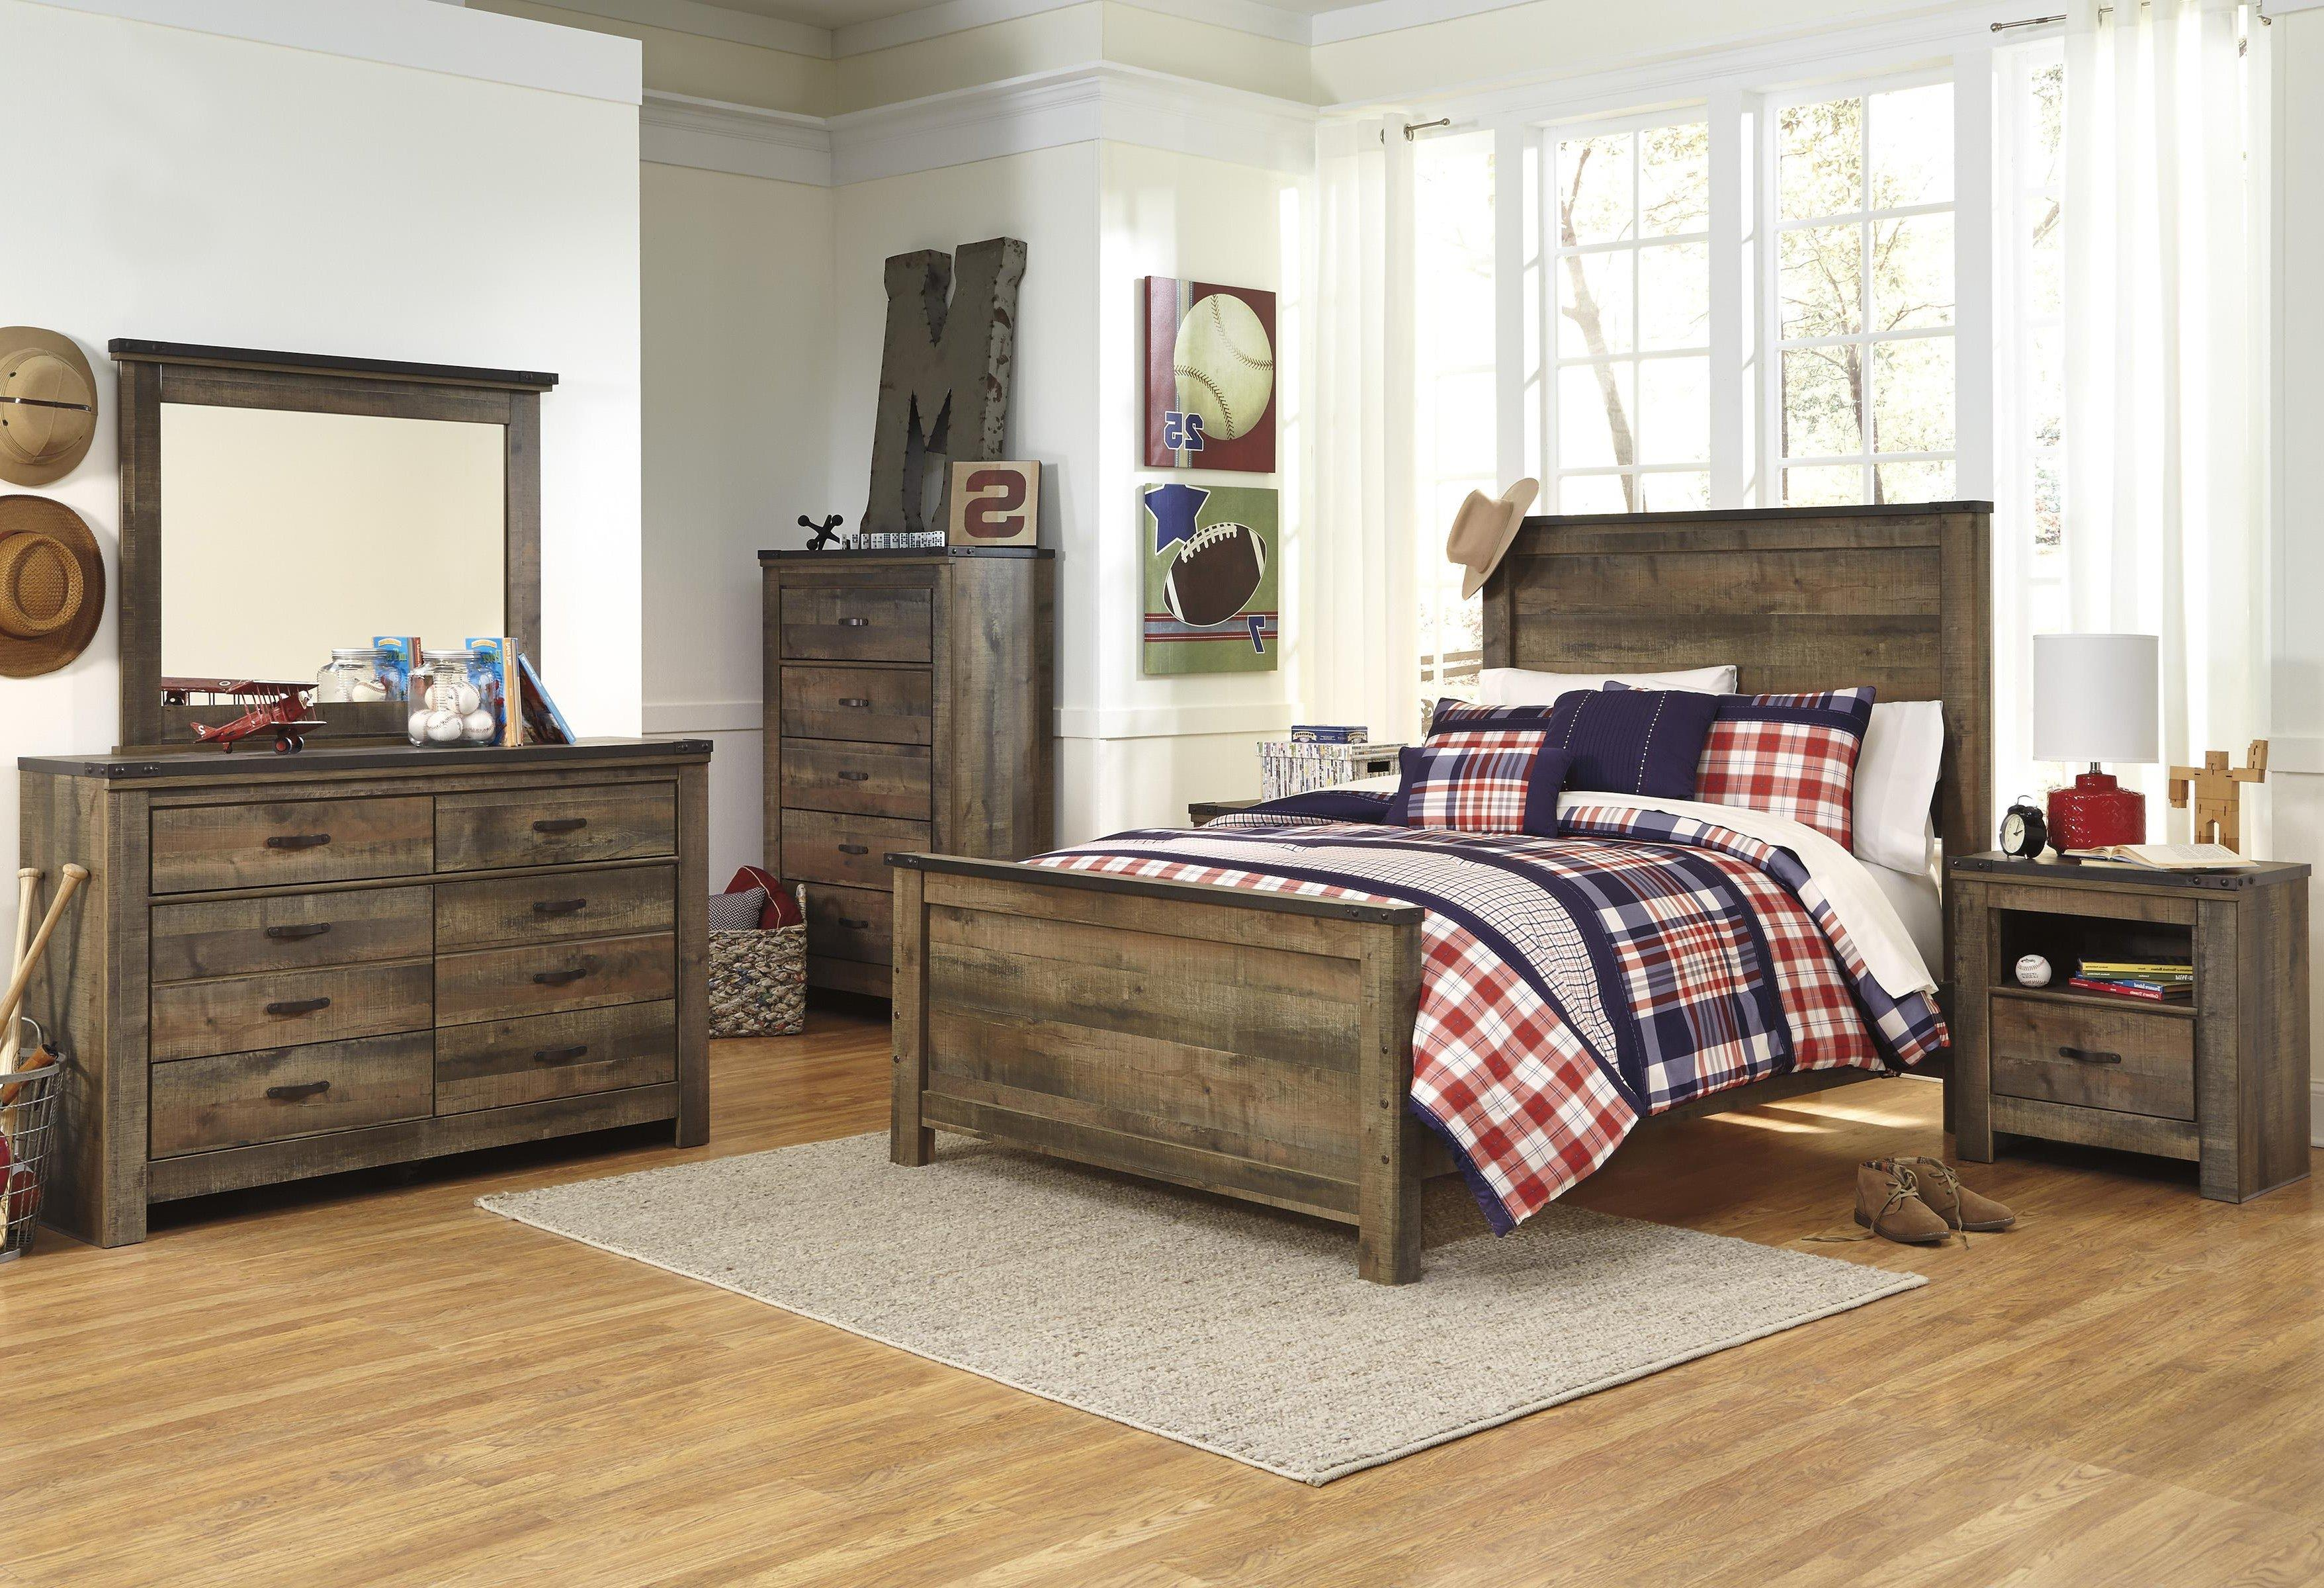 Signature Design by Ashley Trinell Full Bed, Dresser, Mirror and Nightstand - Item Number: FULL B+D+M+NS